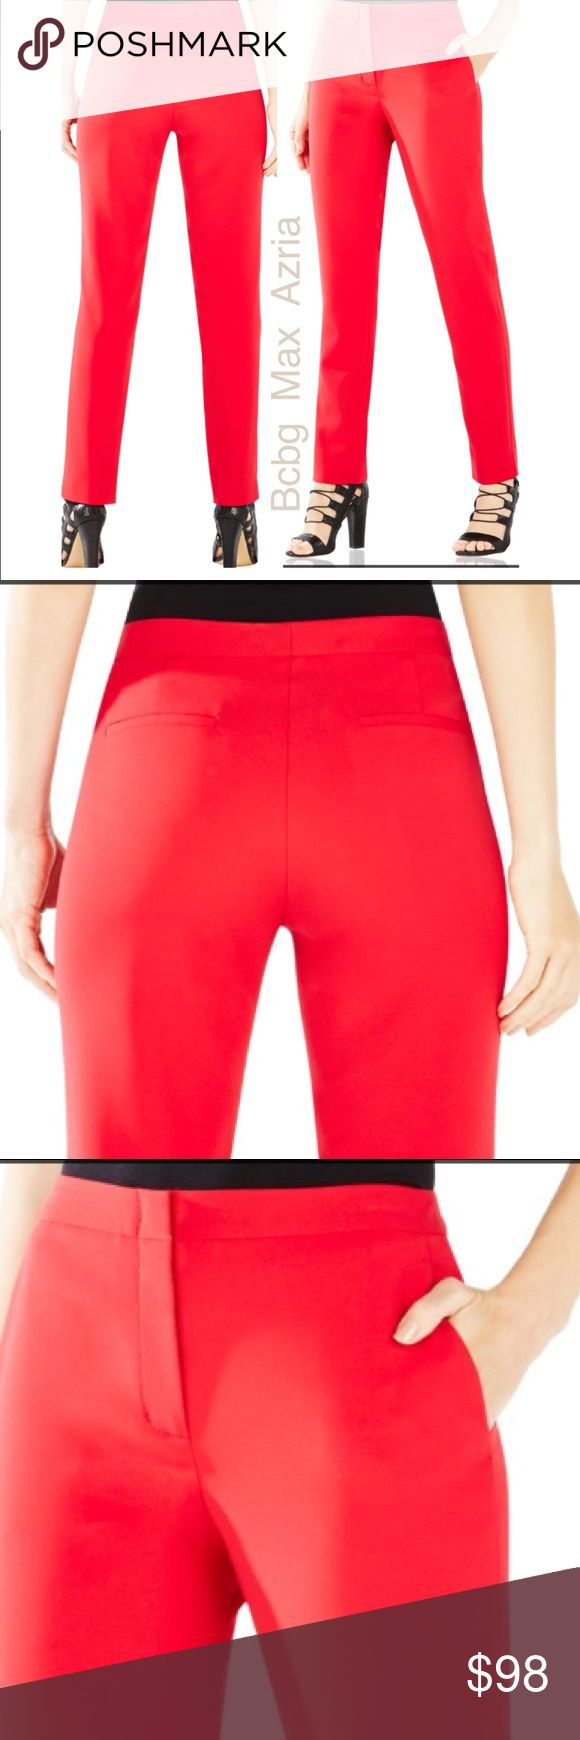 Bcbg Max Azria Tarik Slim Fit Trousers Burnt Poppy Worn Twice!! Make this must-have pant a wardrobe staple. Mix and match for a perfect office look or dress it down for weekend chic. Front slash pockets, back welt pockets, slit at ankle. Front zipper with hook-and-bar closure. Self: Double face suiting in polyester, rayon, spandex. Lining: 1. Stretch crepe de chine - polyester. 2. Stretch poplin - cotton. Washable, dry clean recommended. Size 04 - Lightweight, non-stretch fabric. High rise…